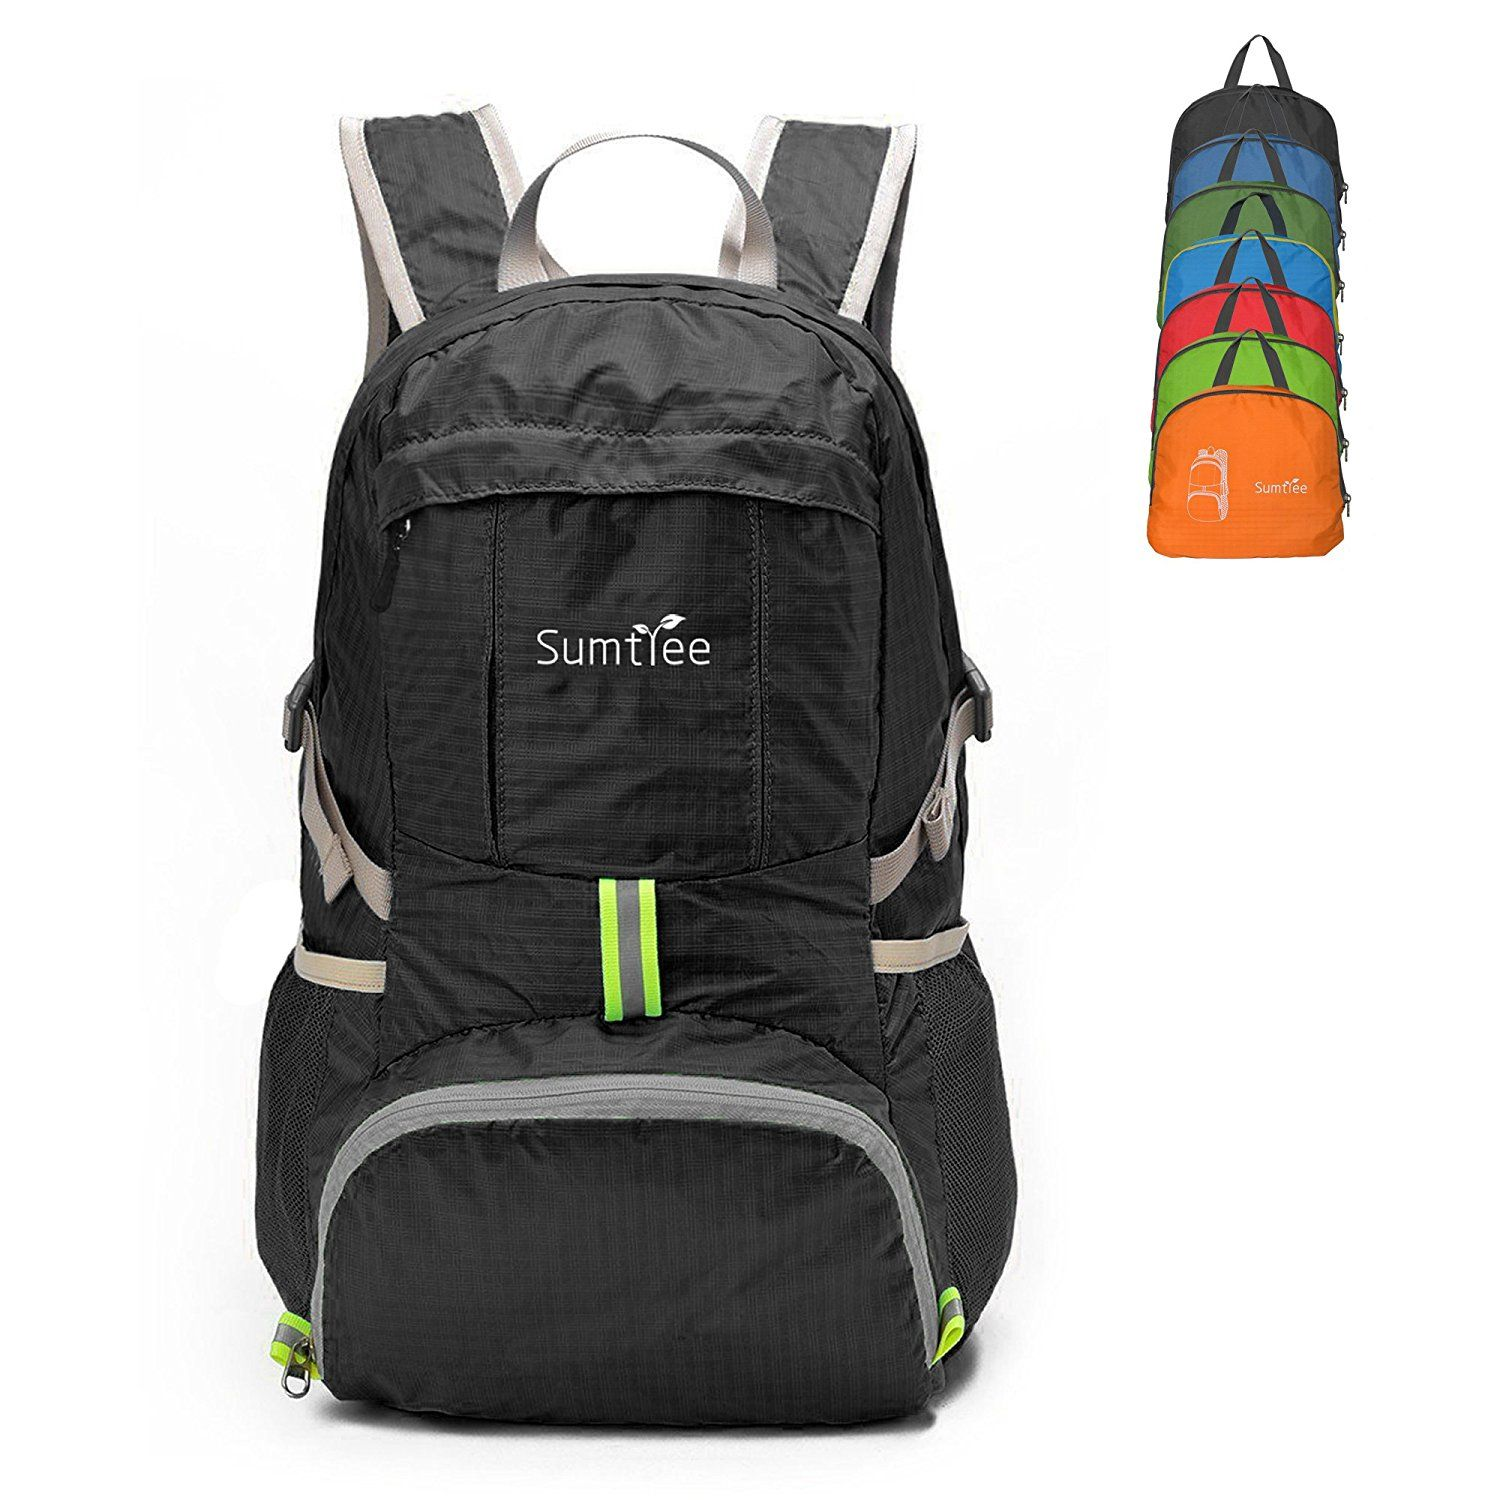 Outdoor Sports Backpack Lightweight Packable Durable Travel Hiking Backpack 35L